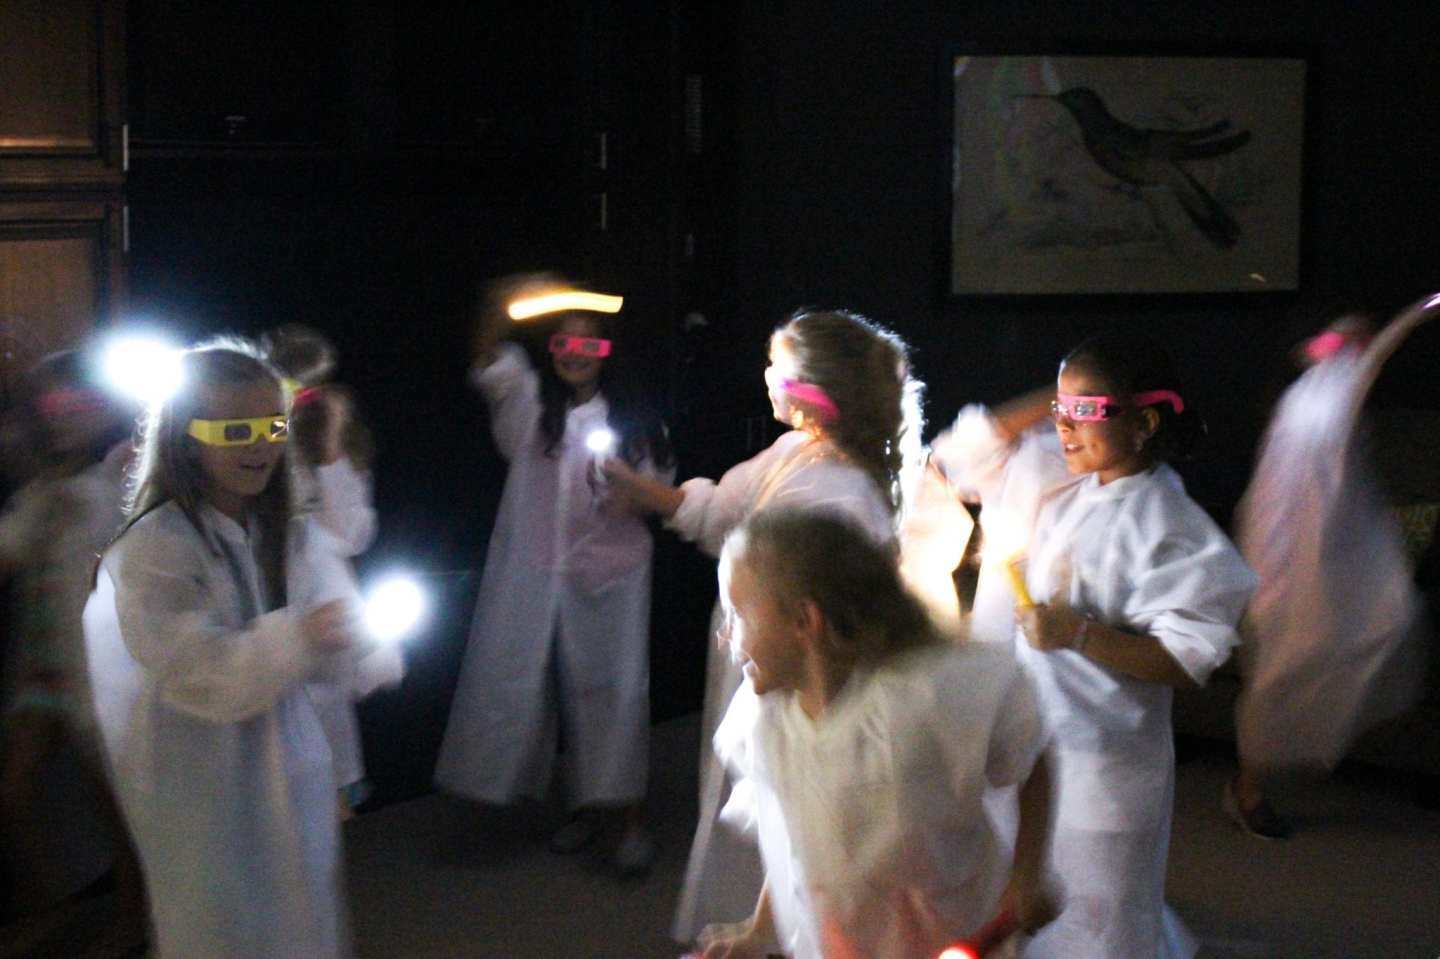 Glow in the Dark Slime Dance Party